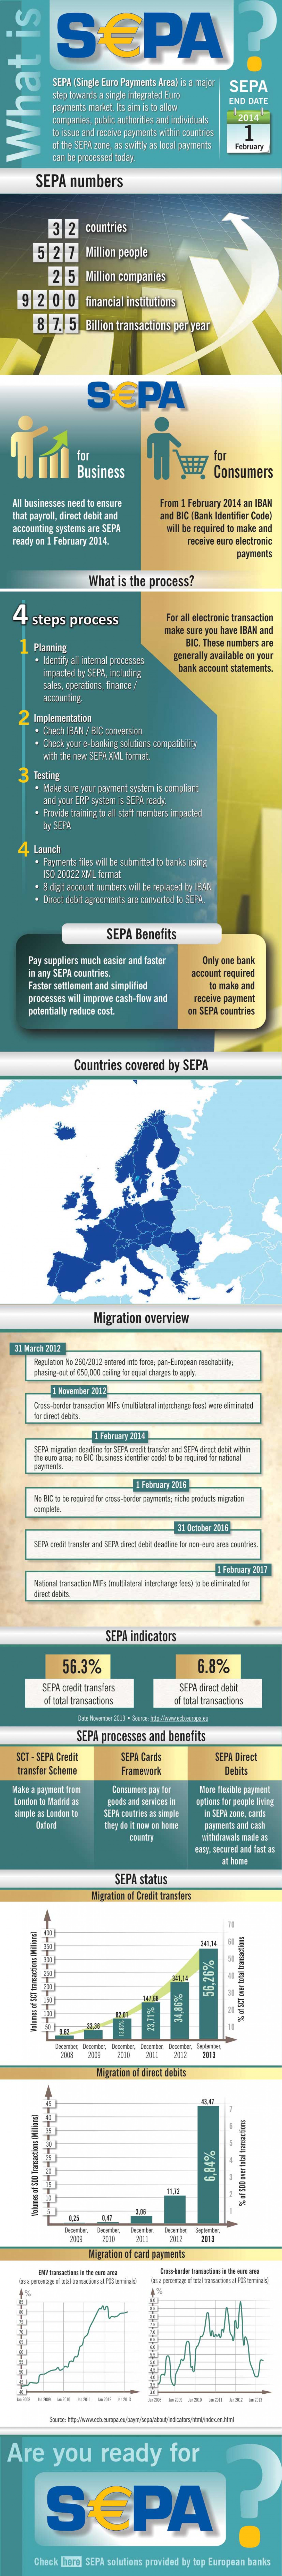 SEPA (single european payments area) infographic Infographic